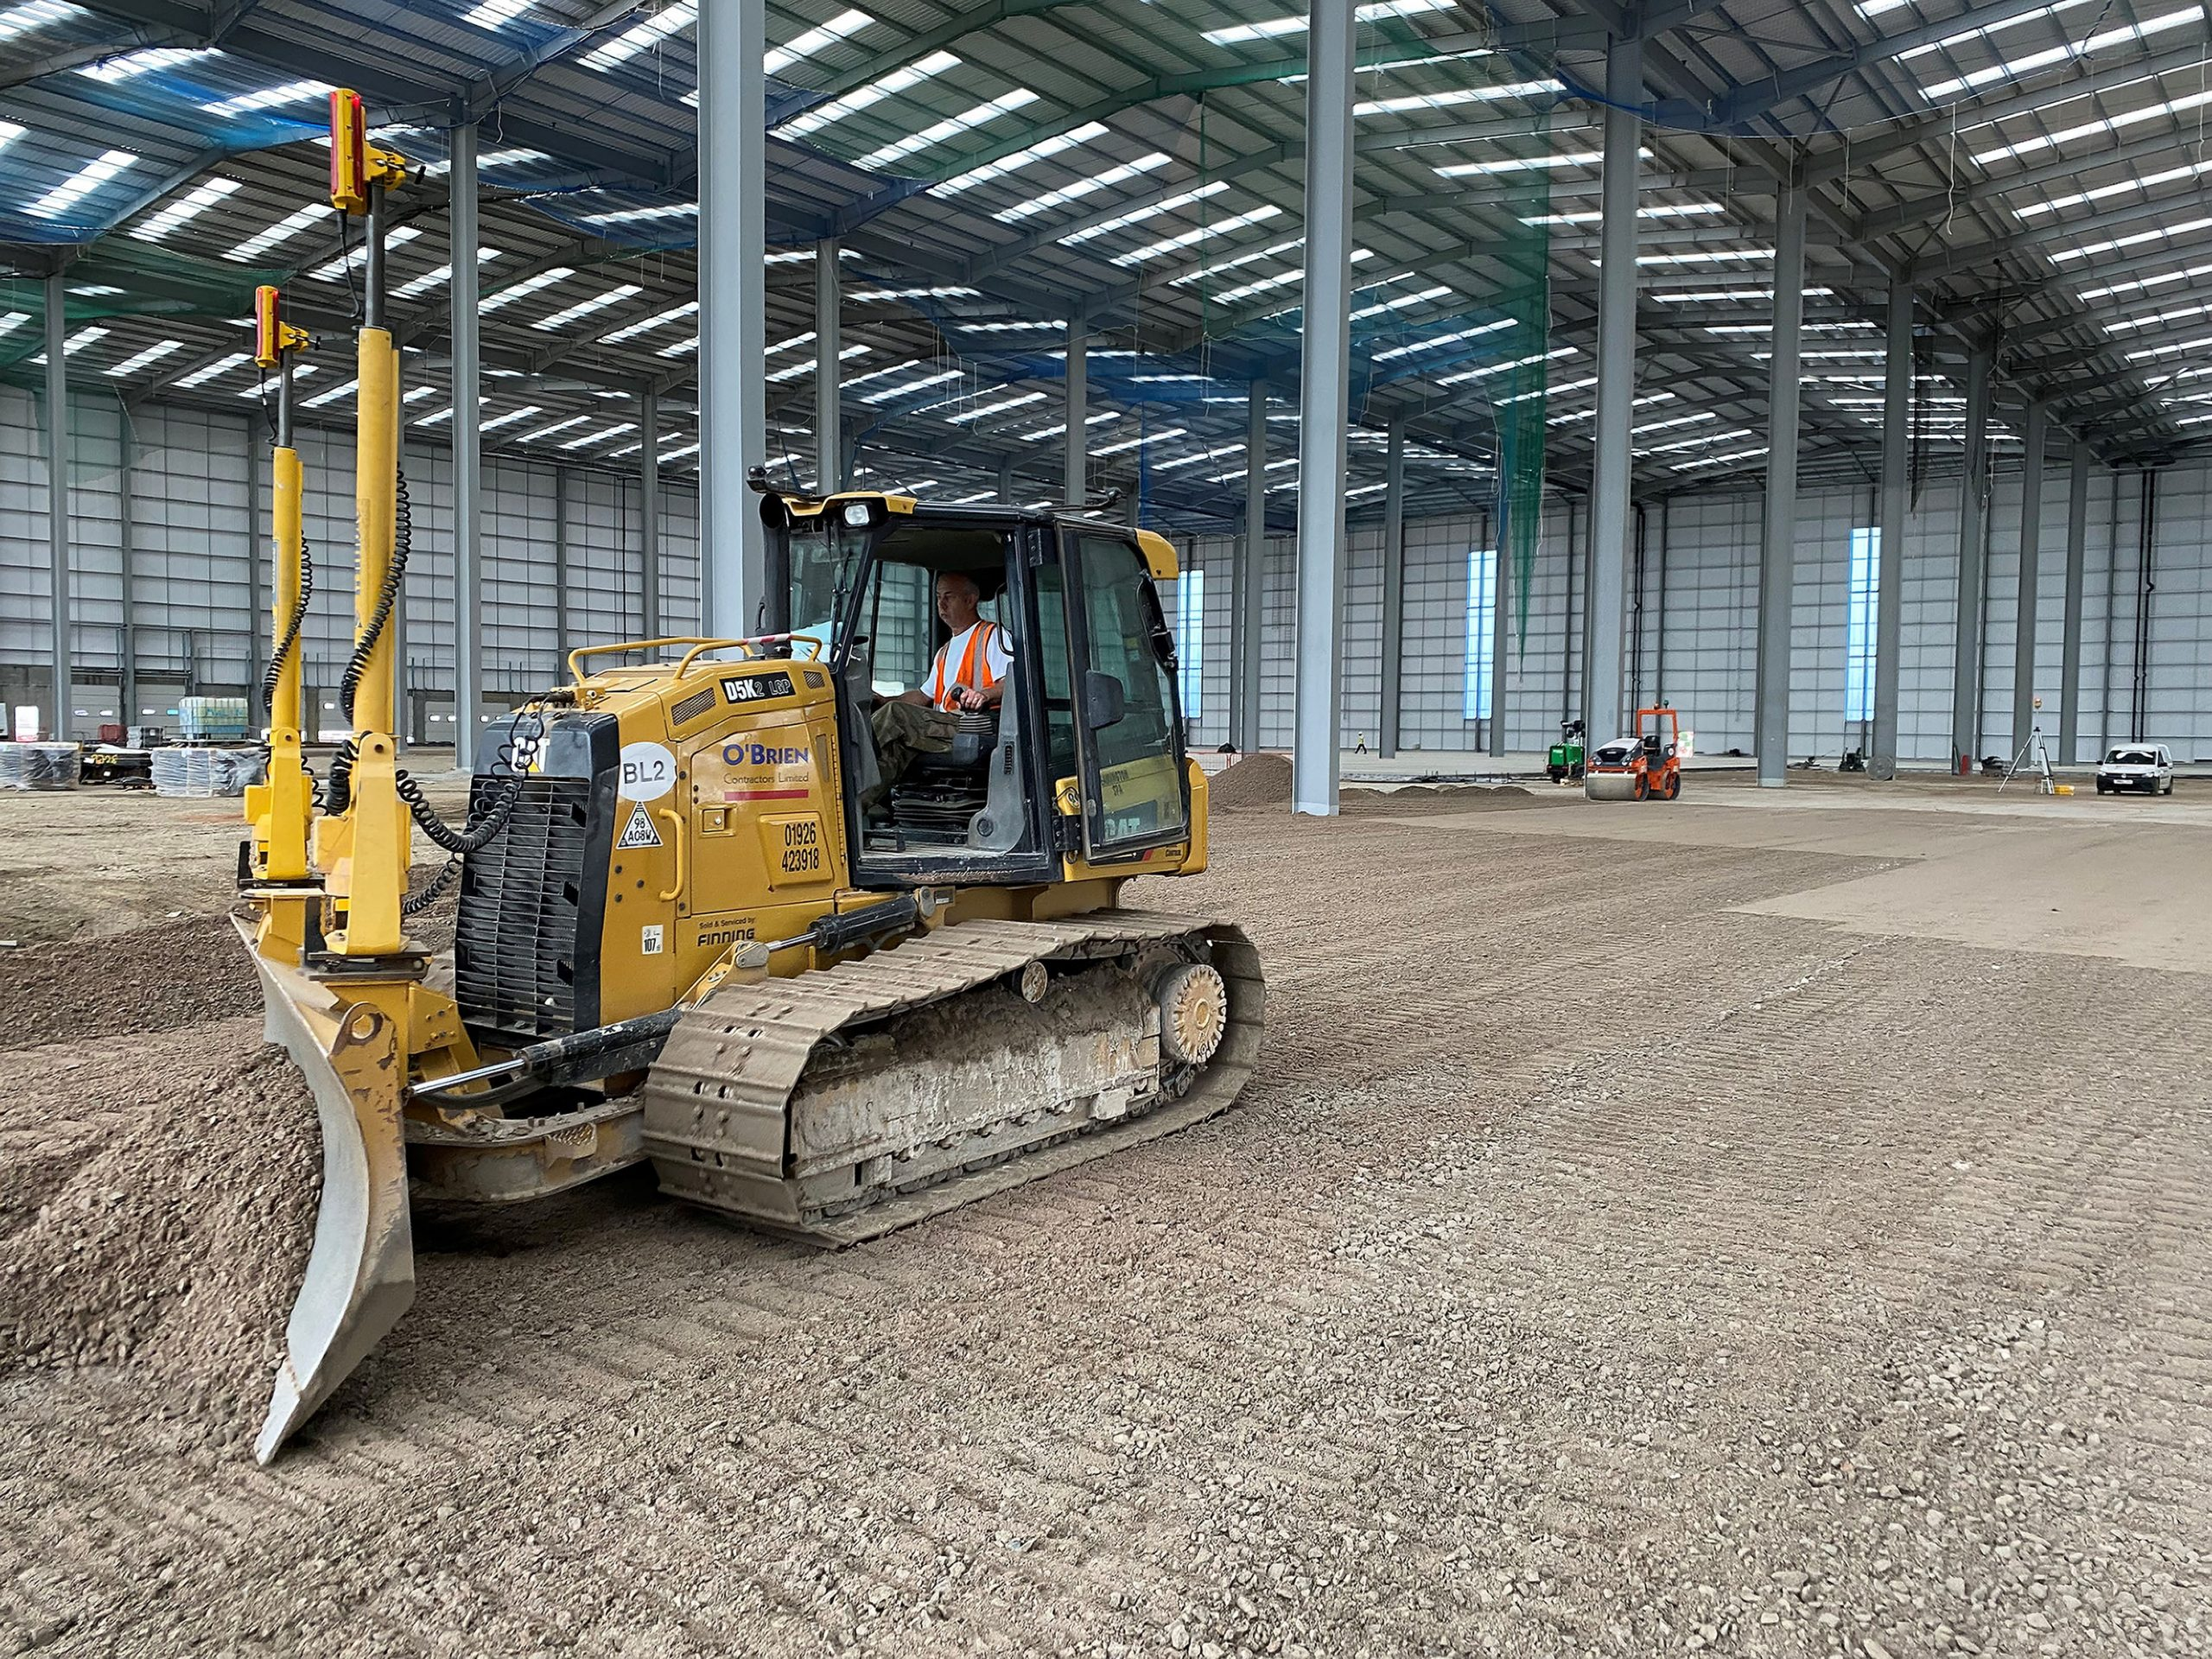 Laser Levelling for Sub-Base Preparation – One of Many Services Provided